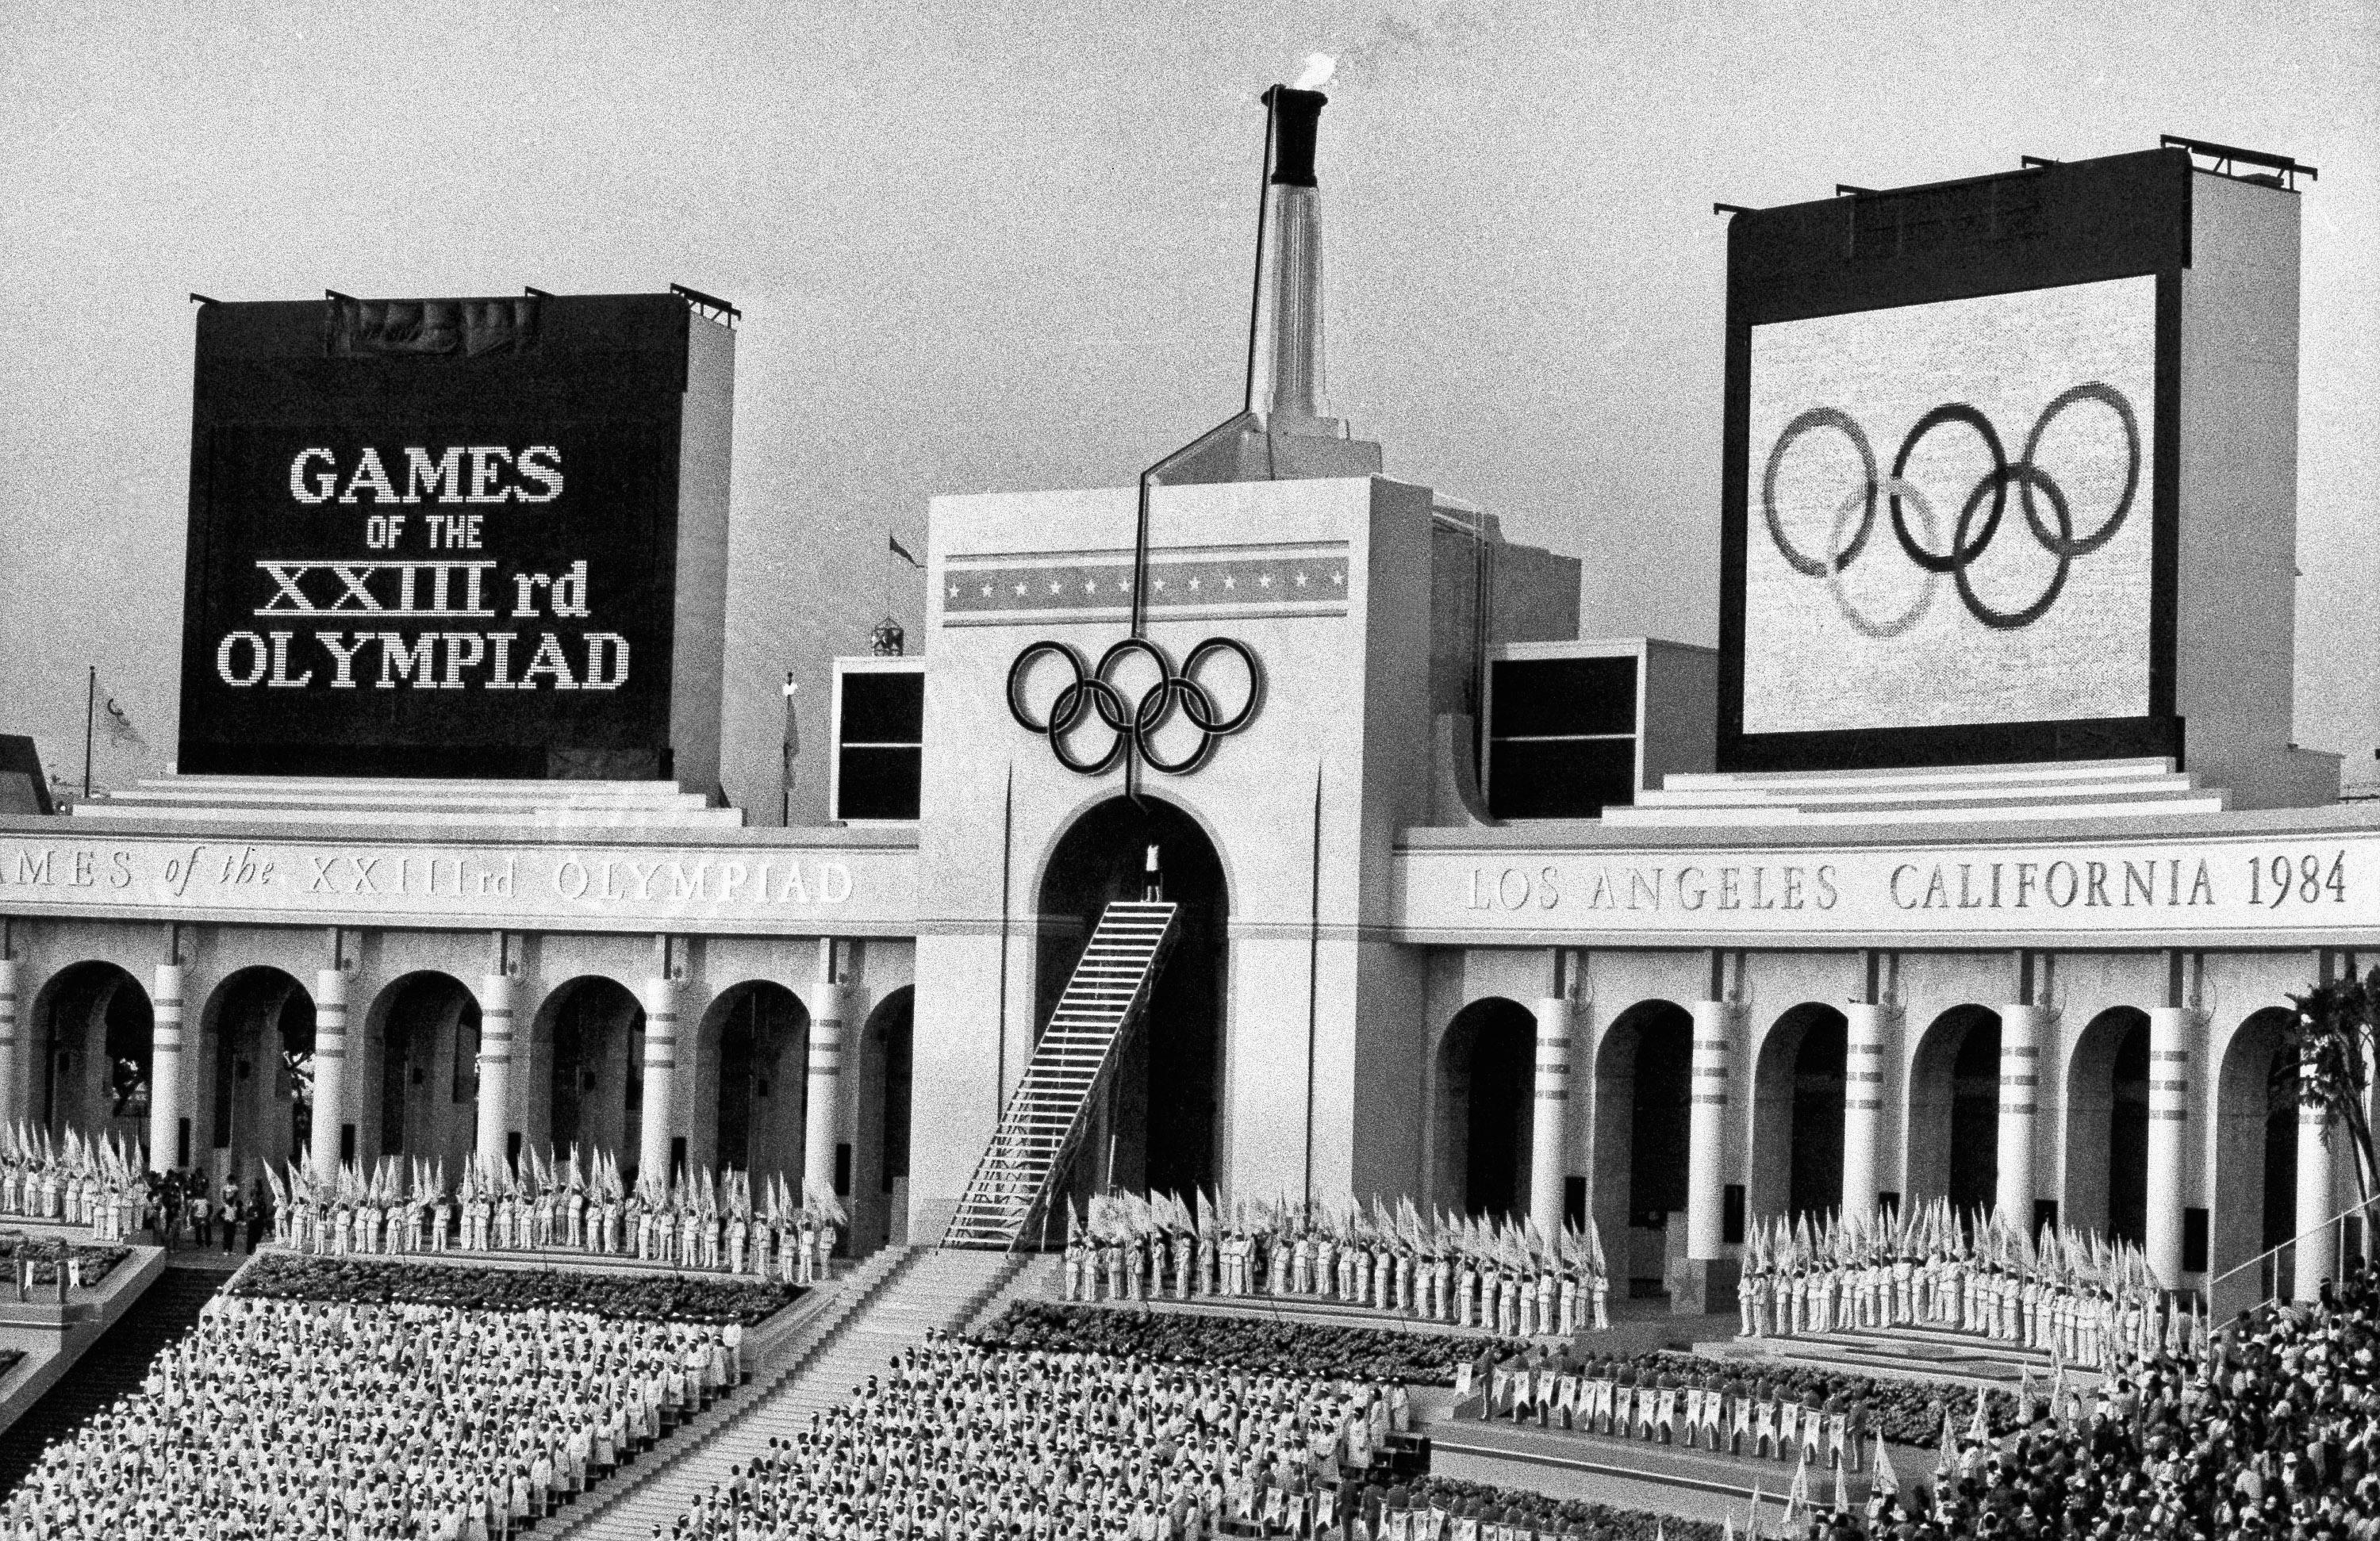 FILE - In this July 28, 1984, file photo, the Olympic flame is flanked by a scoreboard signifying the formal opening of the XXIII Olympiad after it was lit by Rafer Johnson during the opening ceremonies in Los Angeles Memorial Coliseum in Los Angels. (AP Photo/Eric Risberg, File)